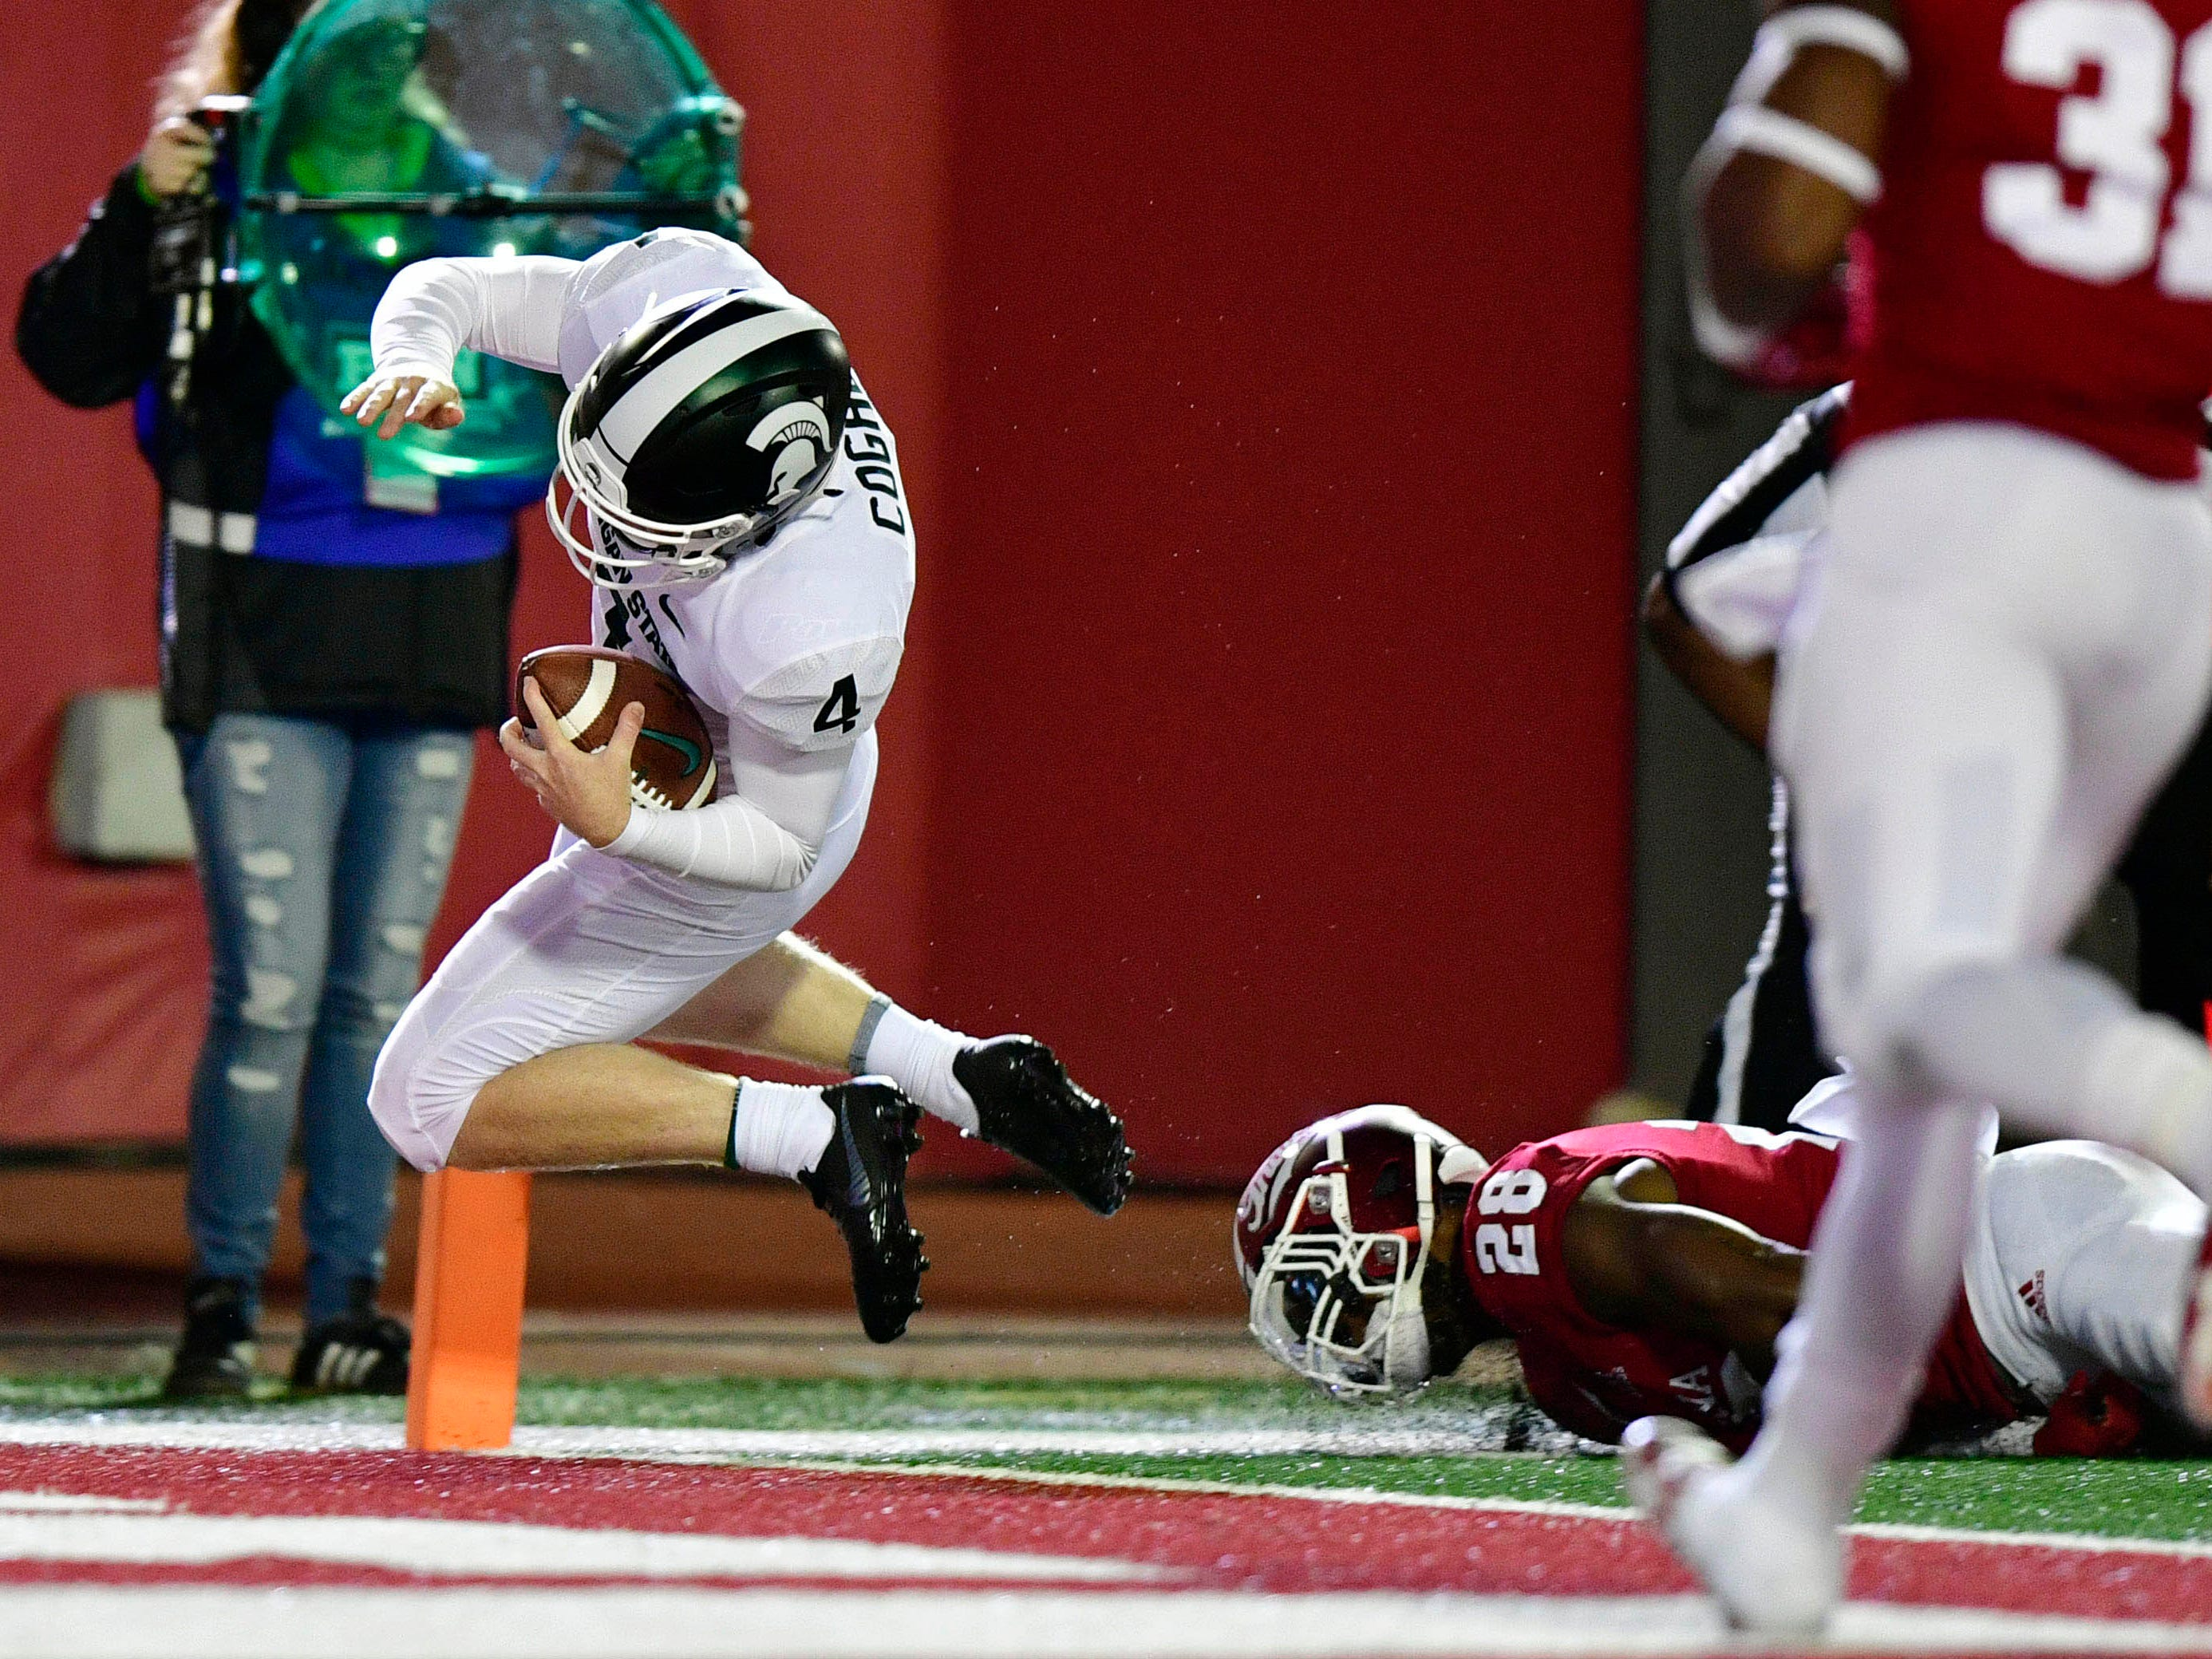 Michigan State Spartans wide receiver C.J. Hayes (4) jumps into the end zone to score a touchdown during the second half of the game against Indiana at Memorial Stadium. The Michigan State Spartans defeated the Indiana Hoosiers 35 to 21.